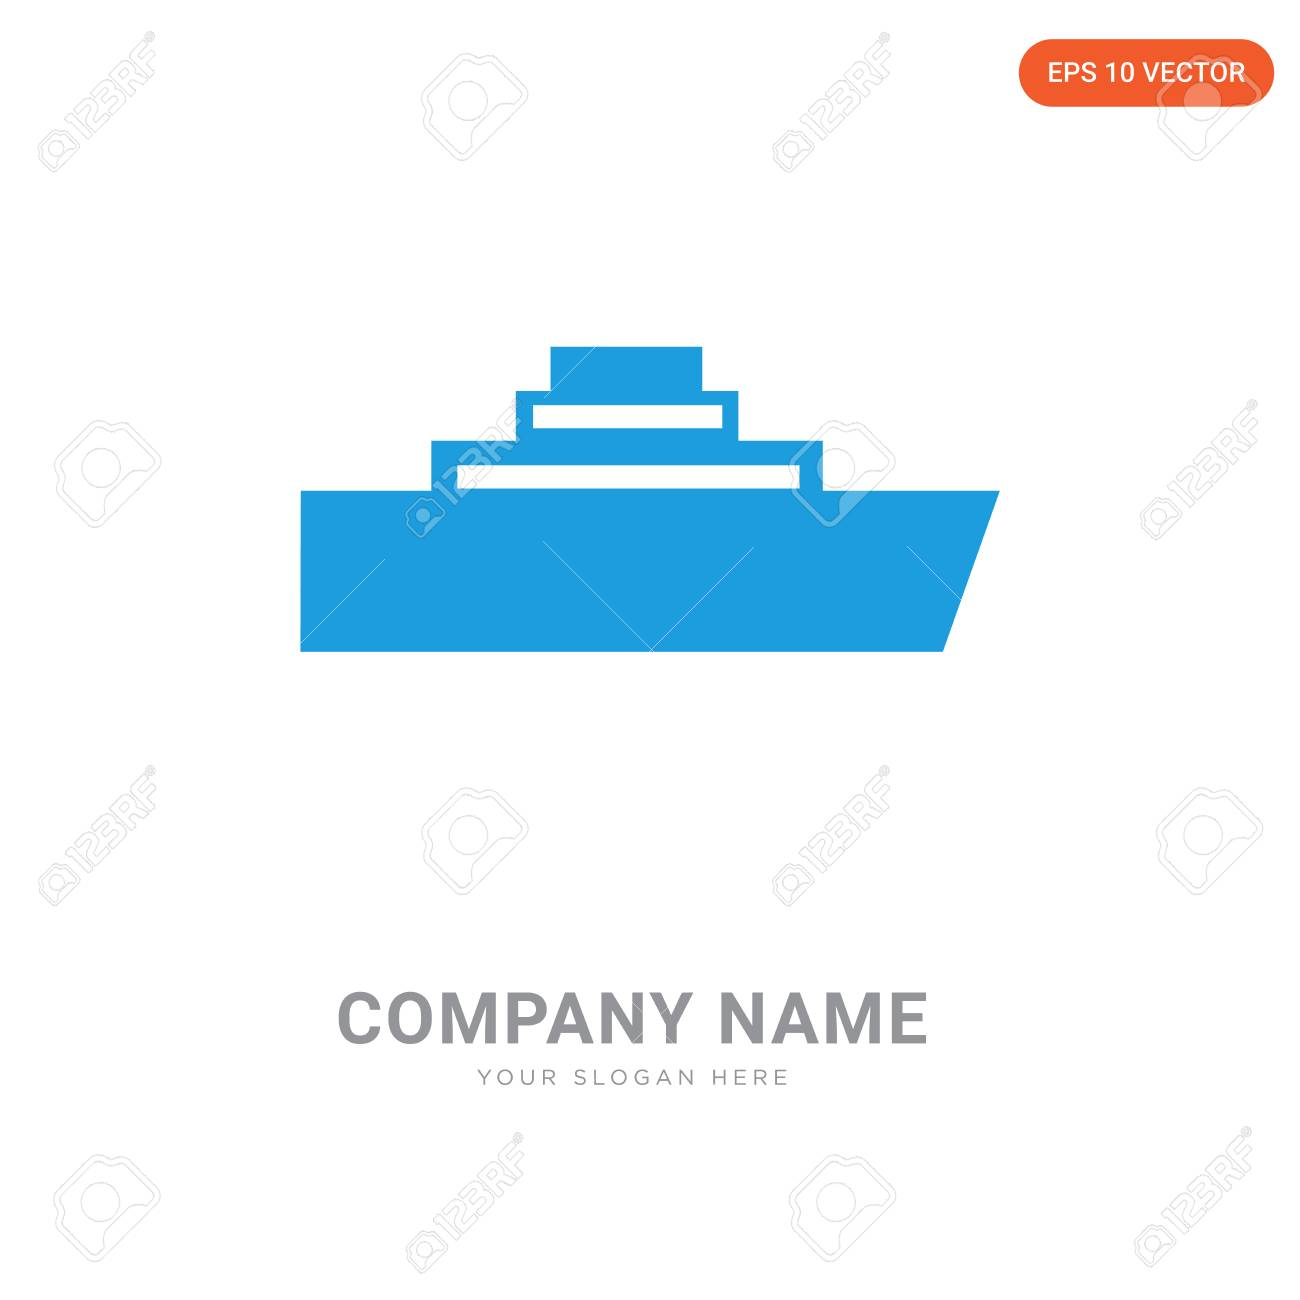 Pirate Ship Company Logo Design Template Logotype